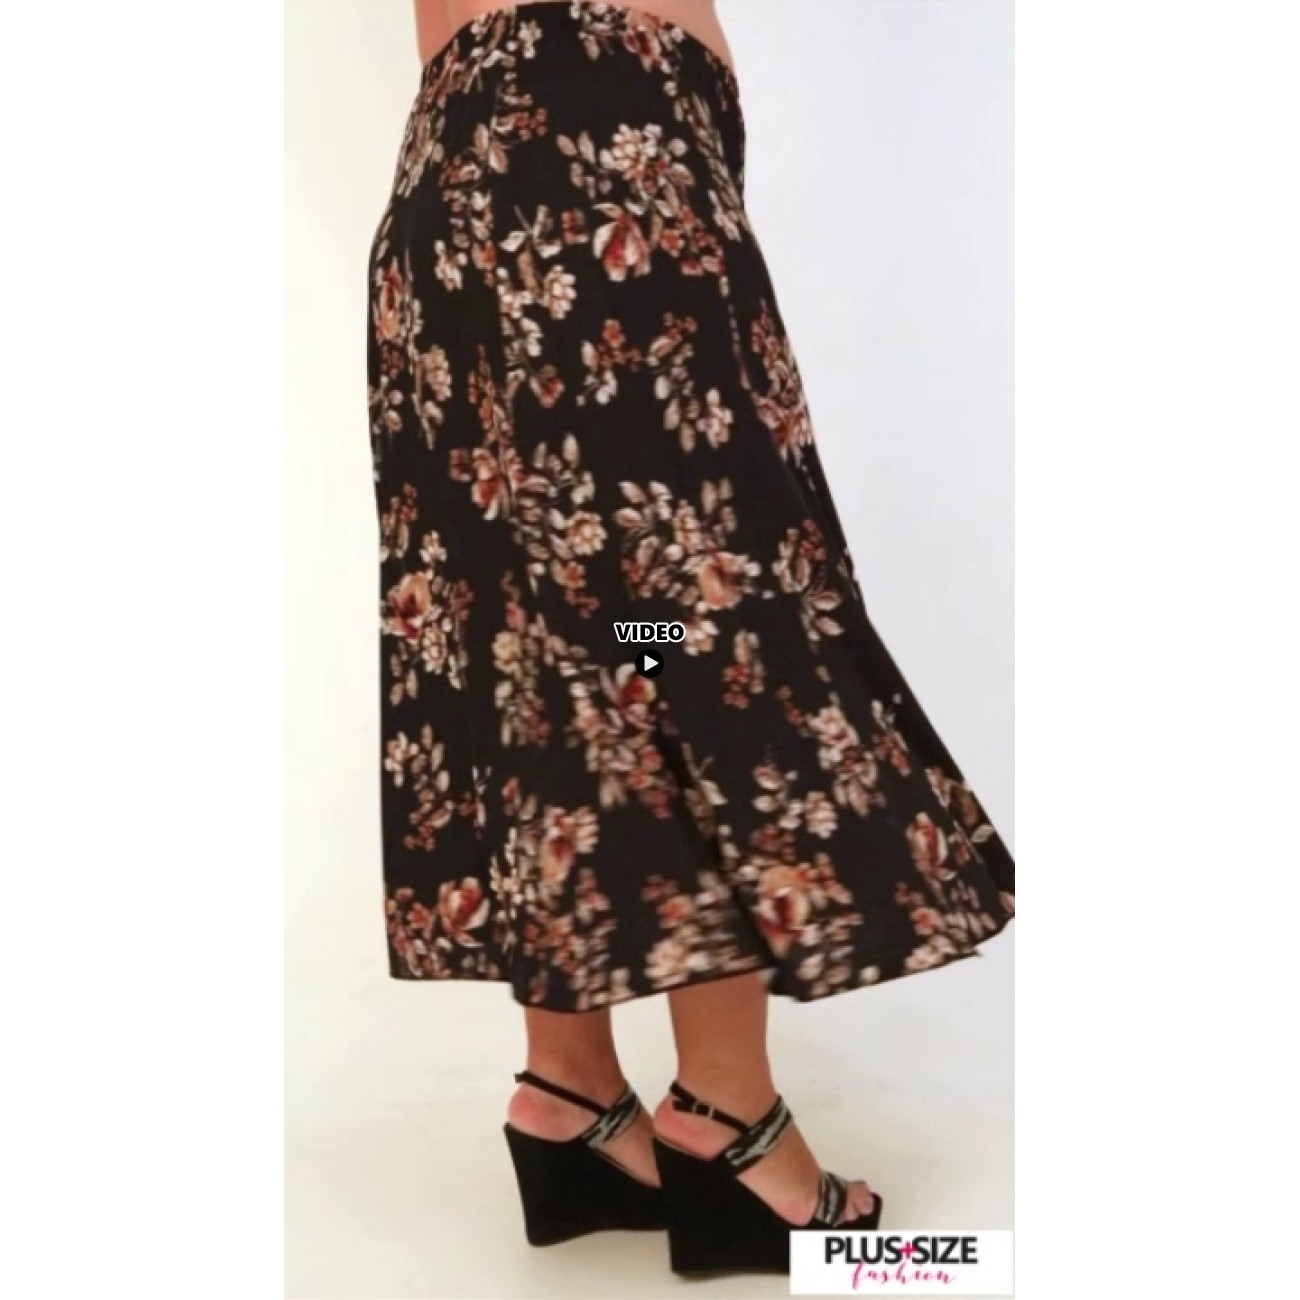 A21-4760 Jersey Closh Skirt with elastic band